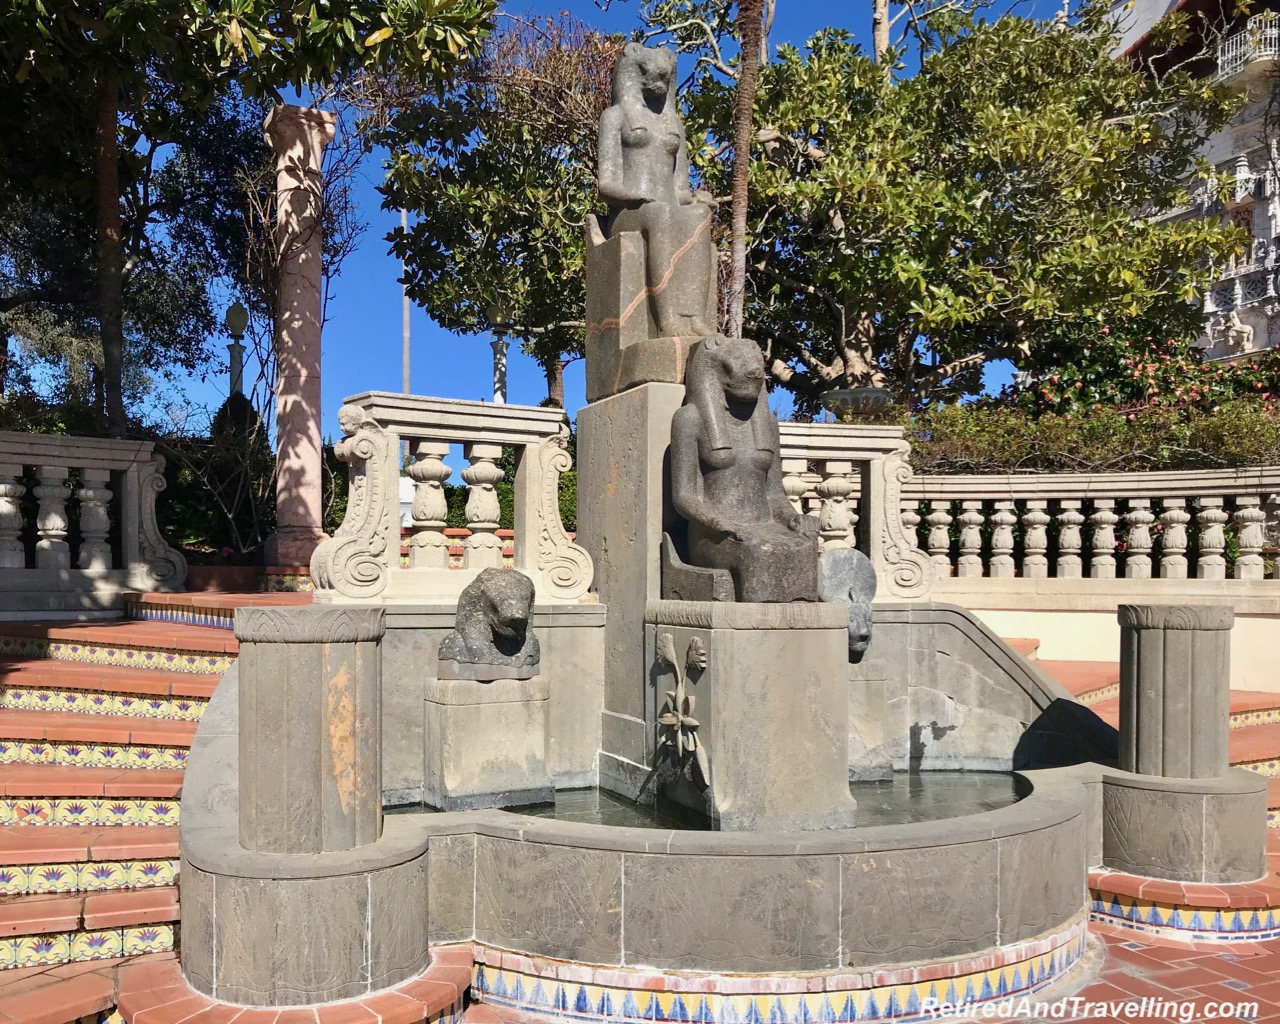 Hearst Grounds Statues Egyptian - Visit The Hearst Castle For Eclectic Sights.jpg